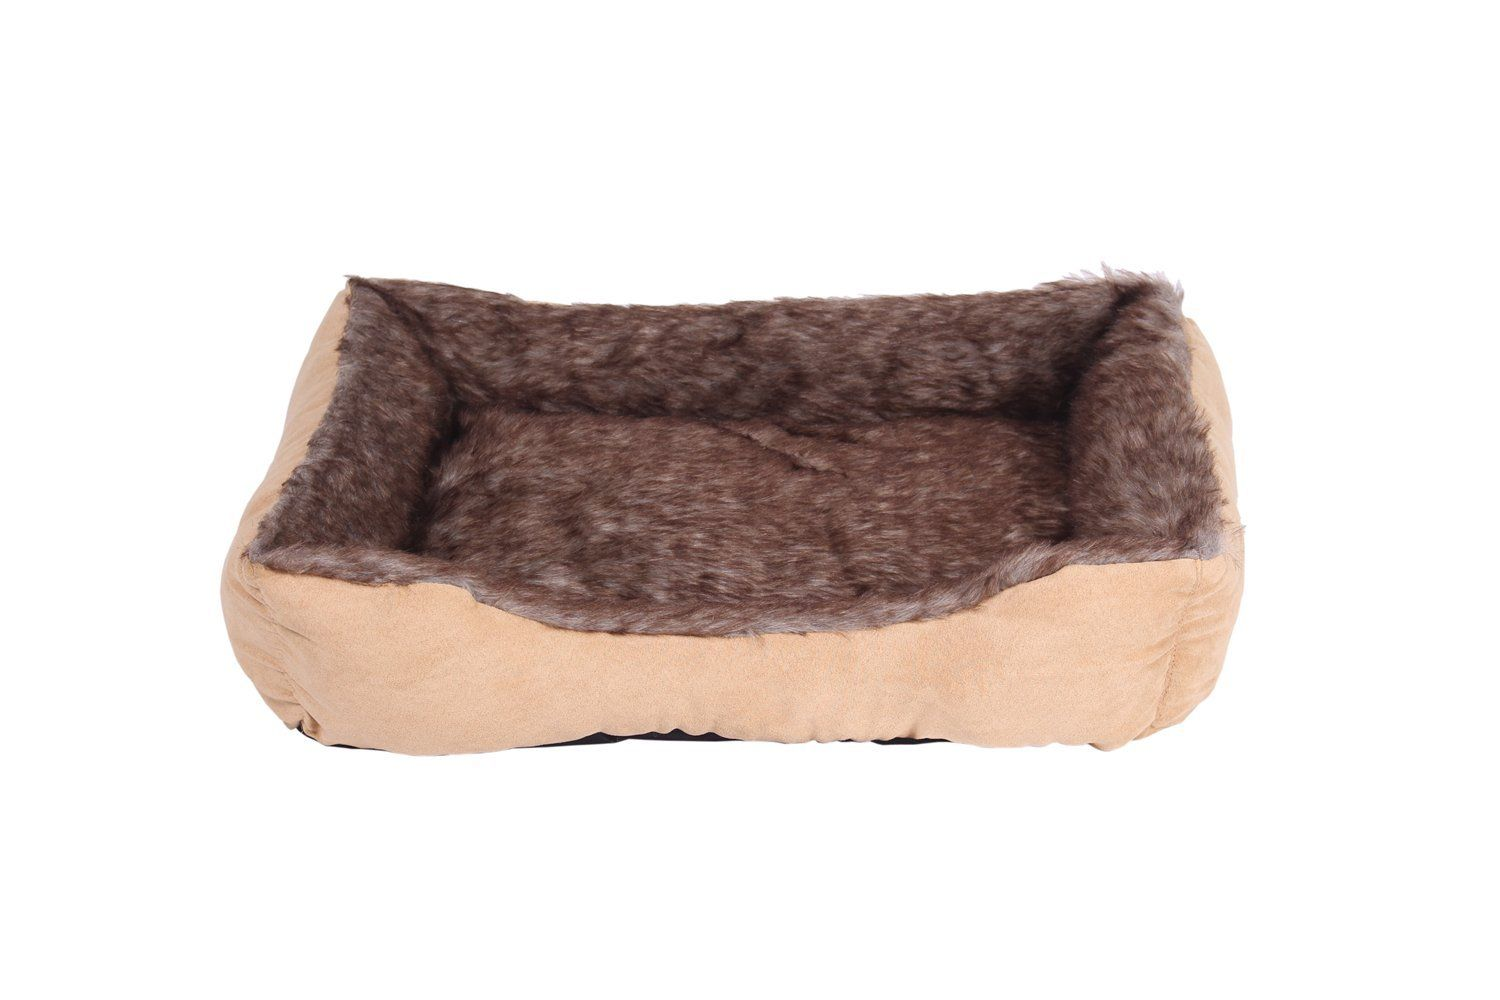 Inn Pet Bed With Removable Cover And Washable Luxury Plush Dog